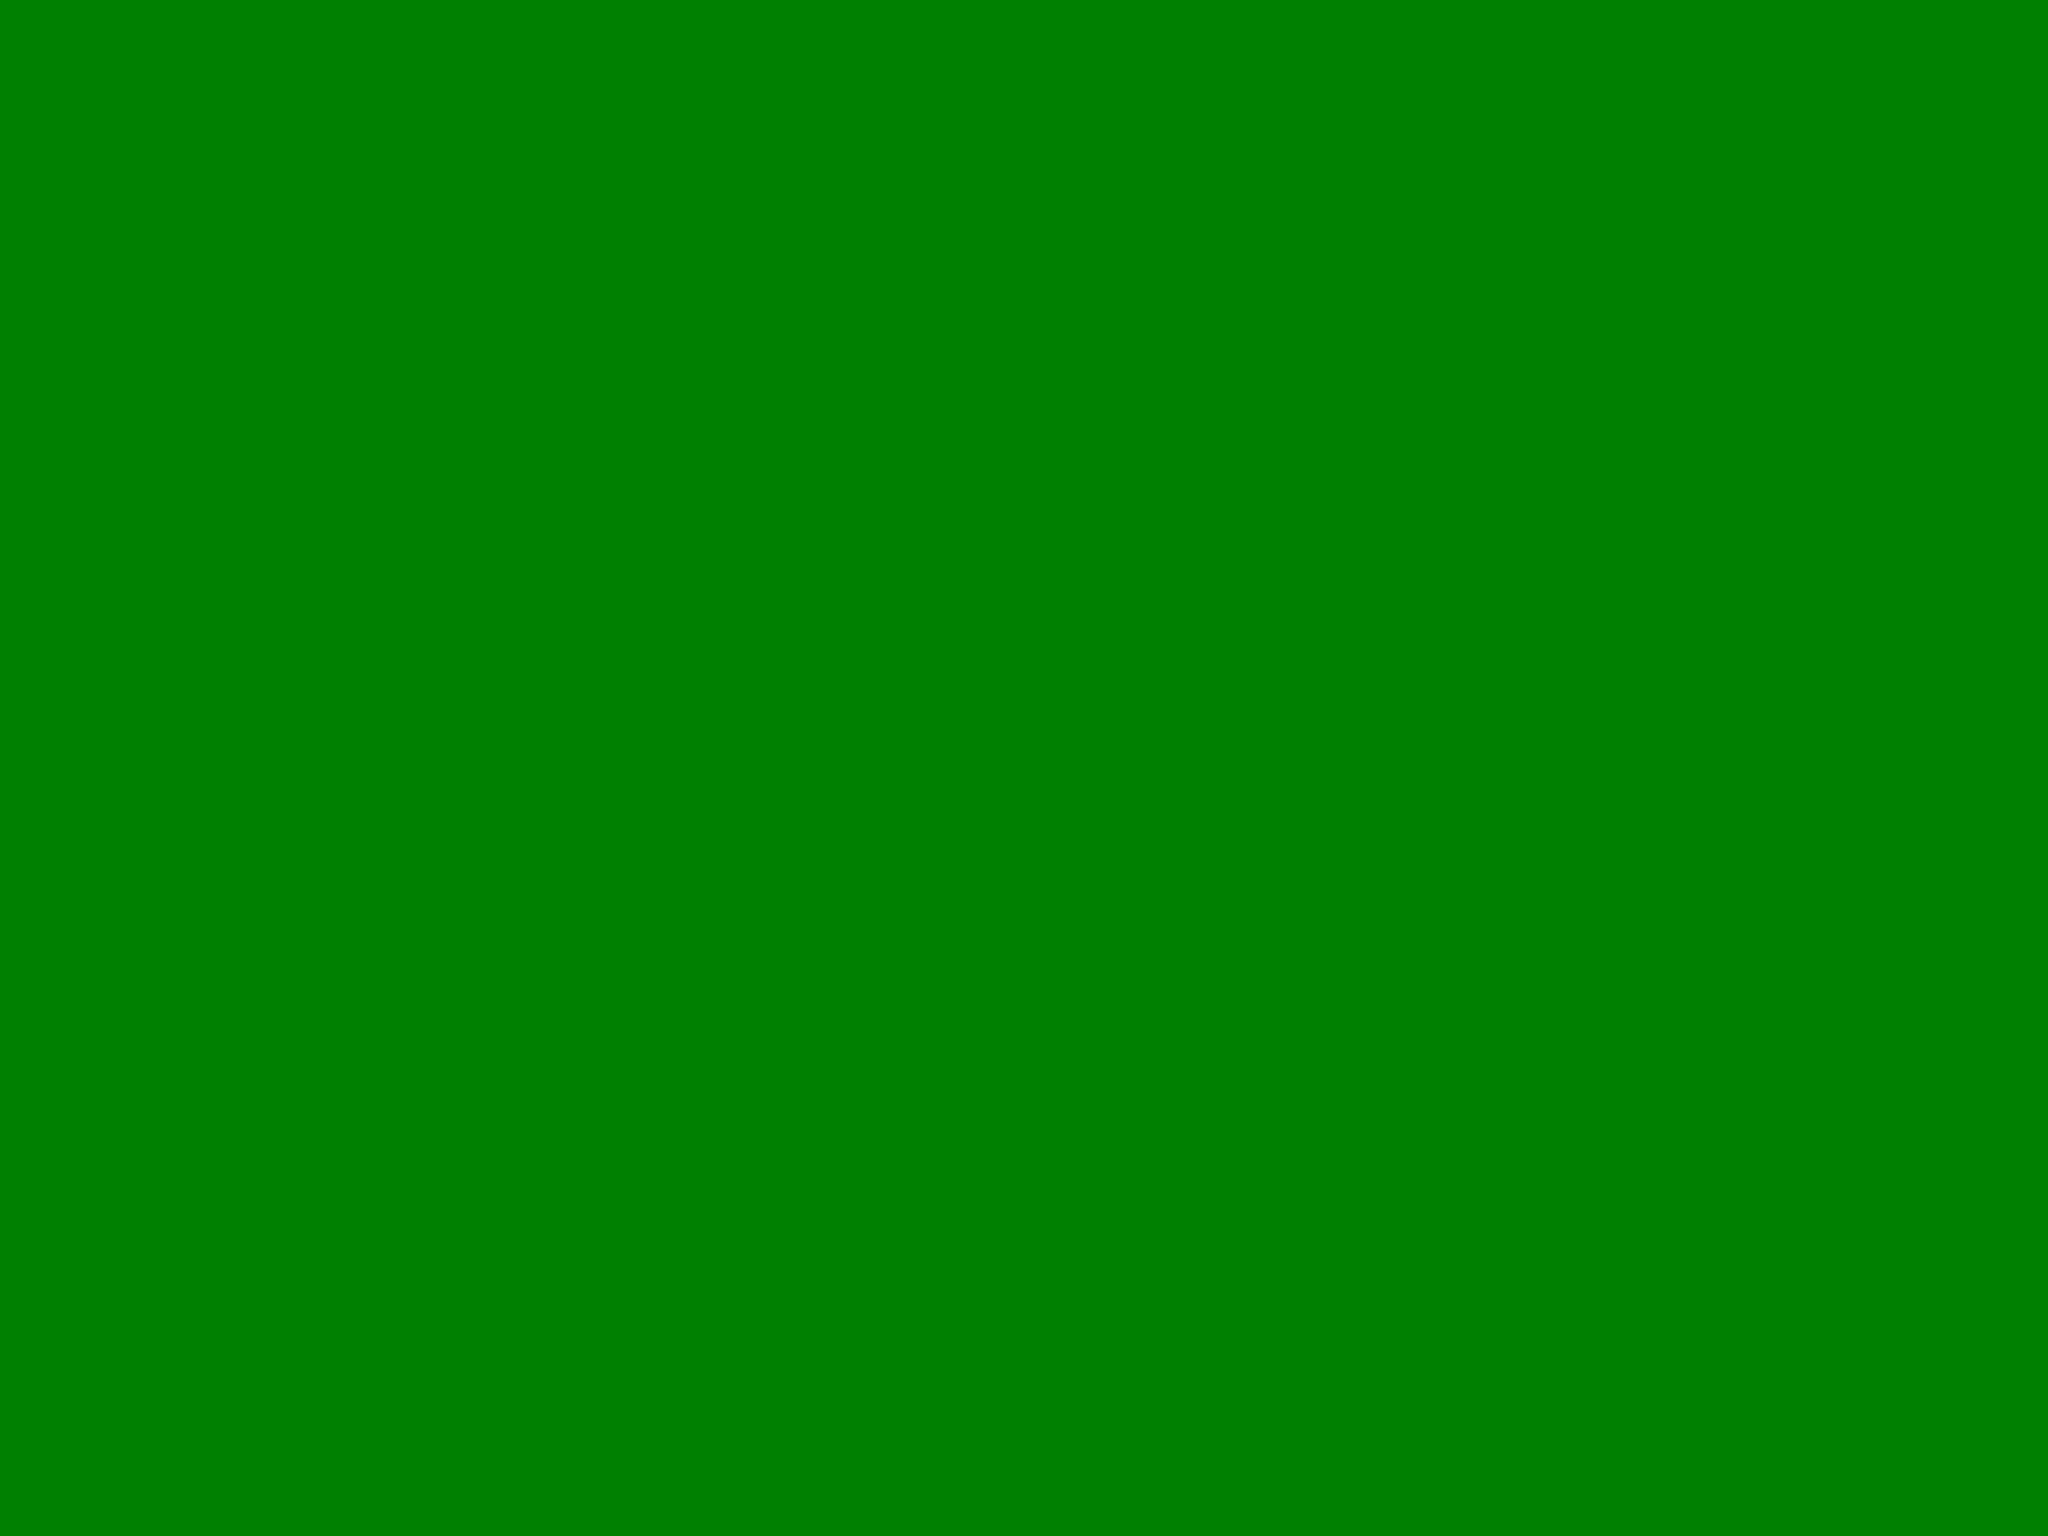 2048x1536 Office Green Solid Color Background